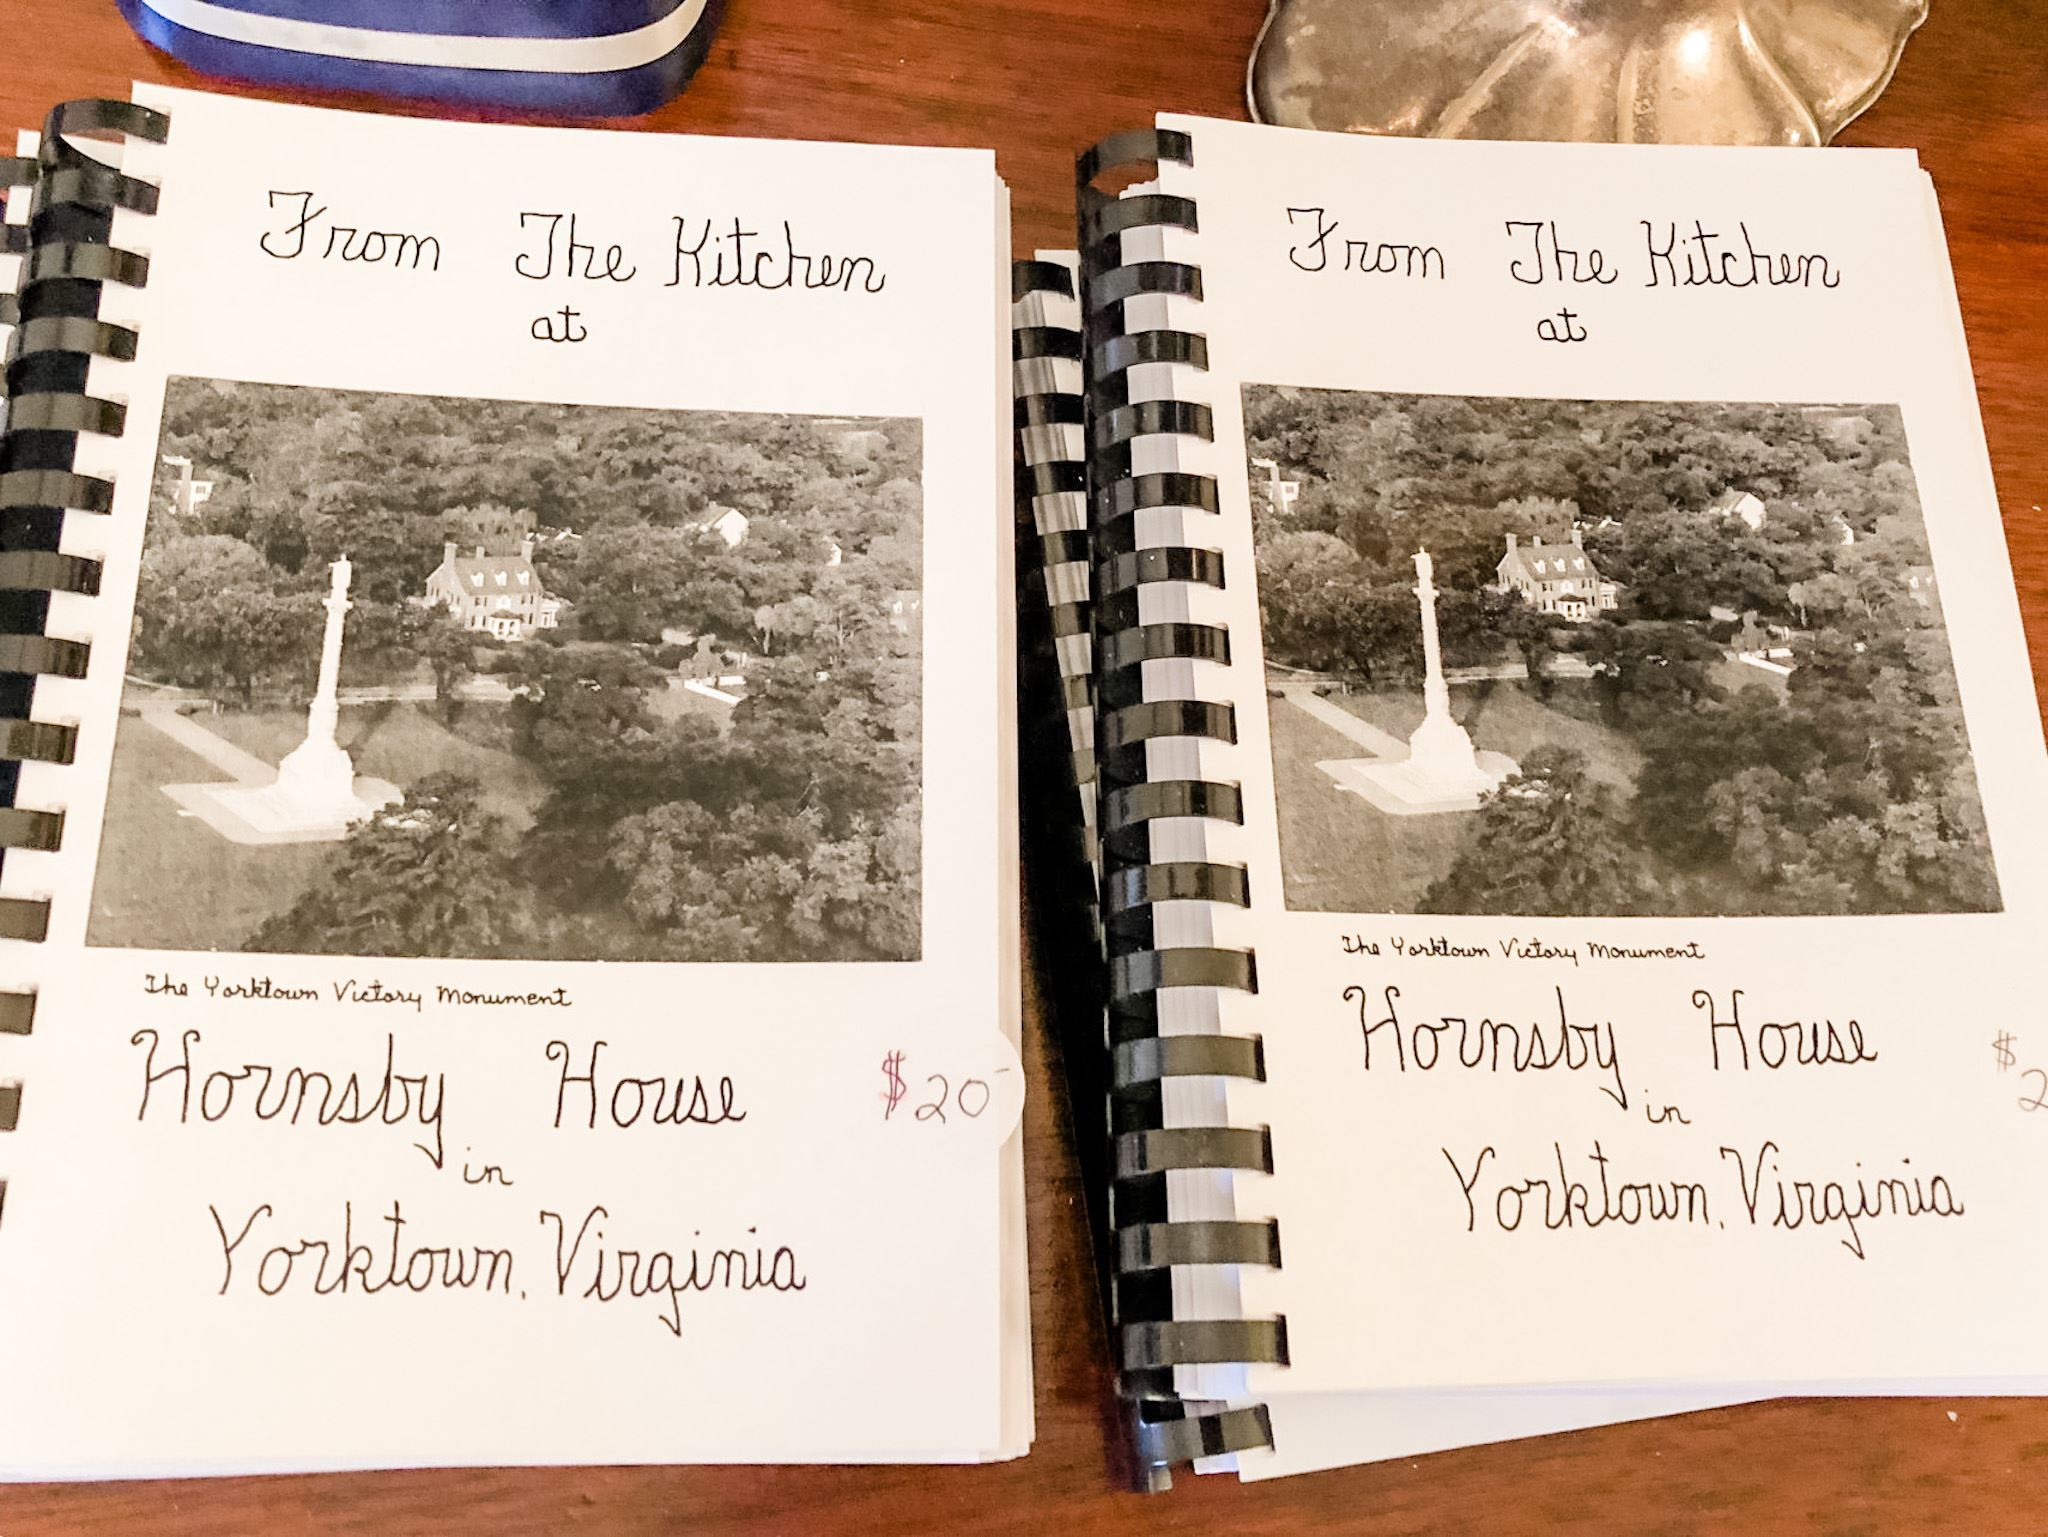 Hornsby House Cookbook